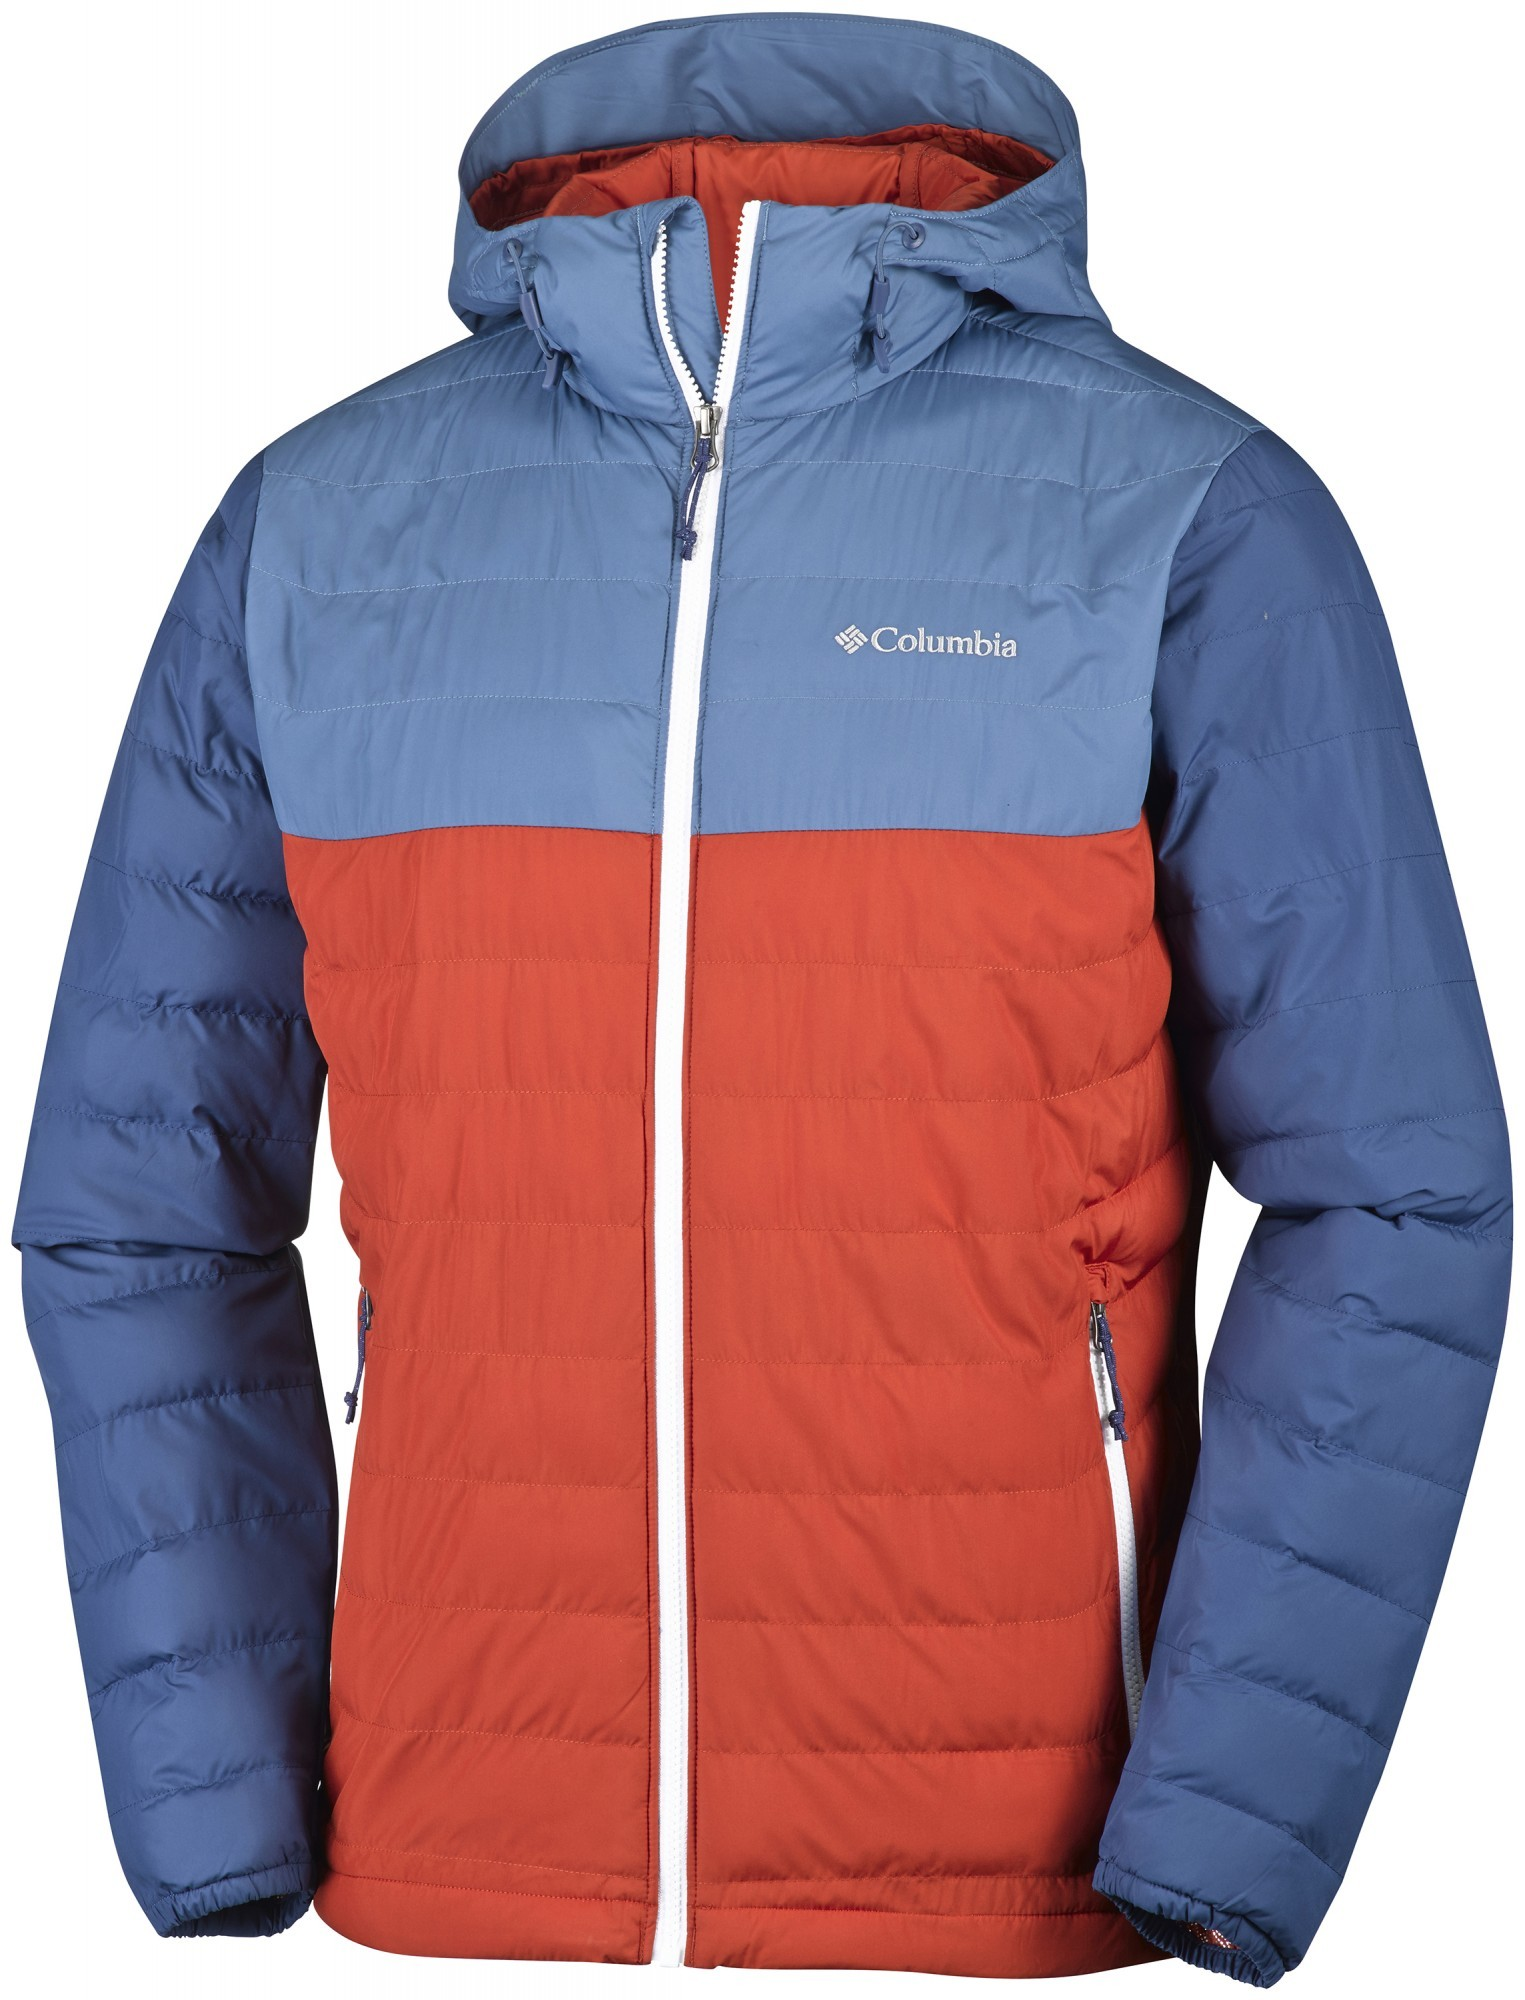 Giacca Columbia Powder Lite: divertirsi in inverno